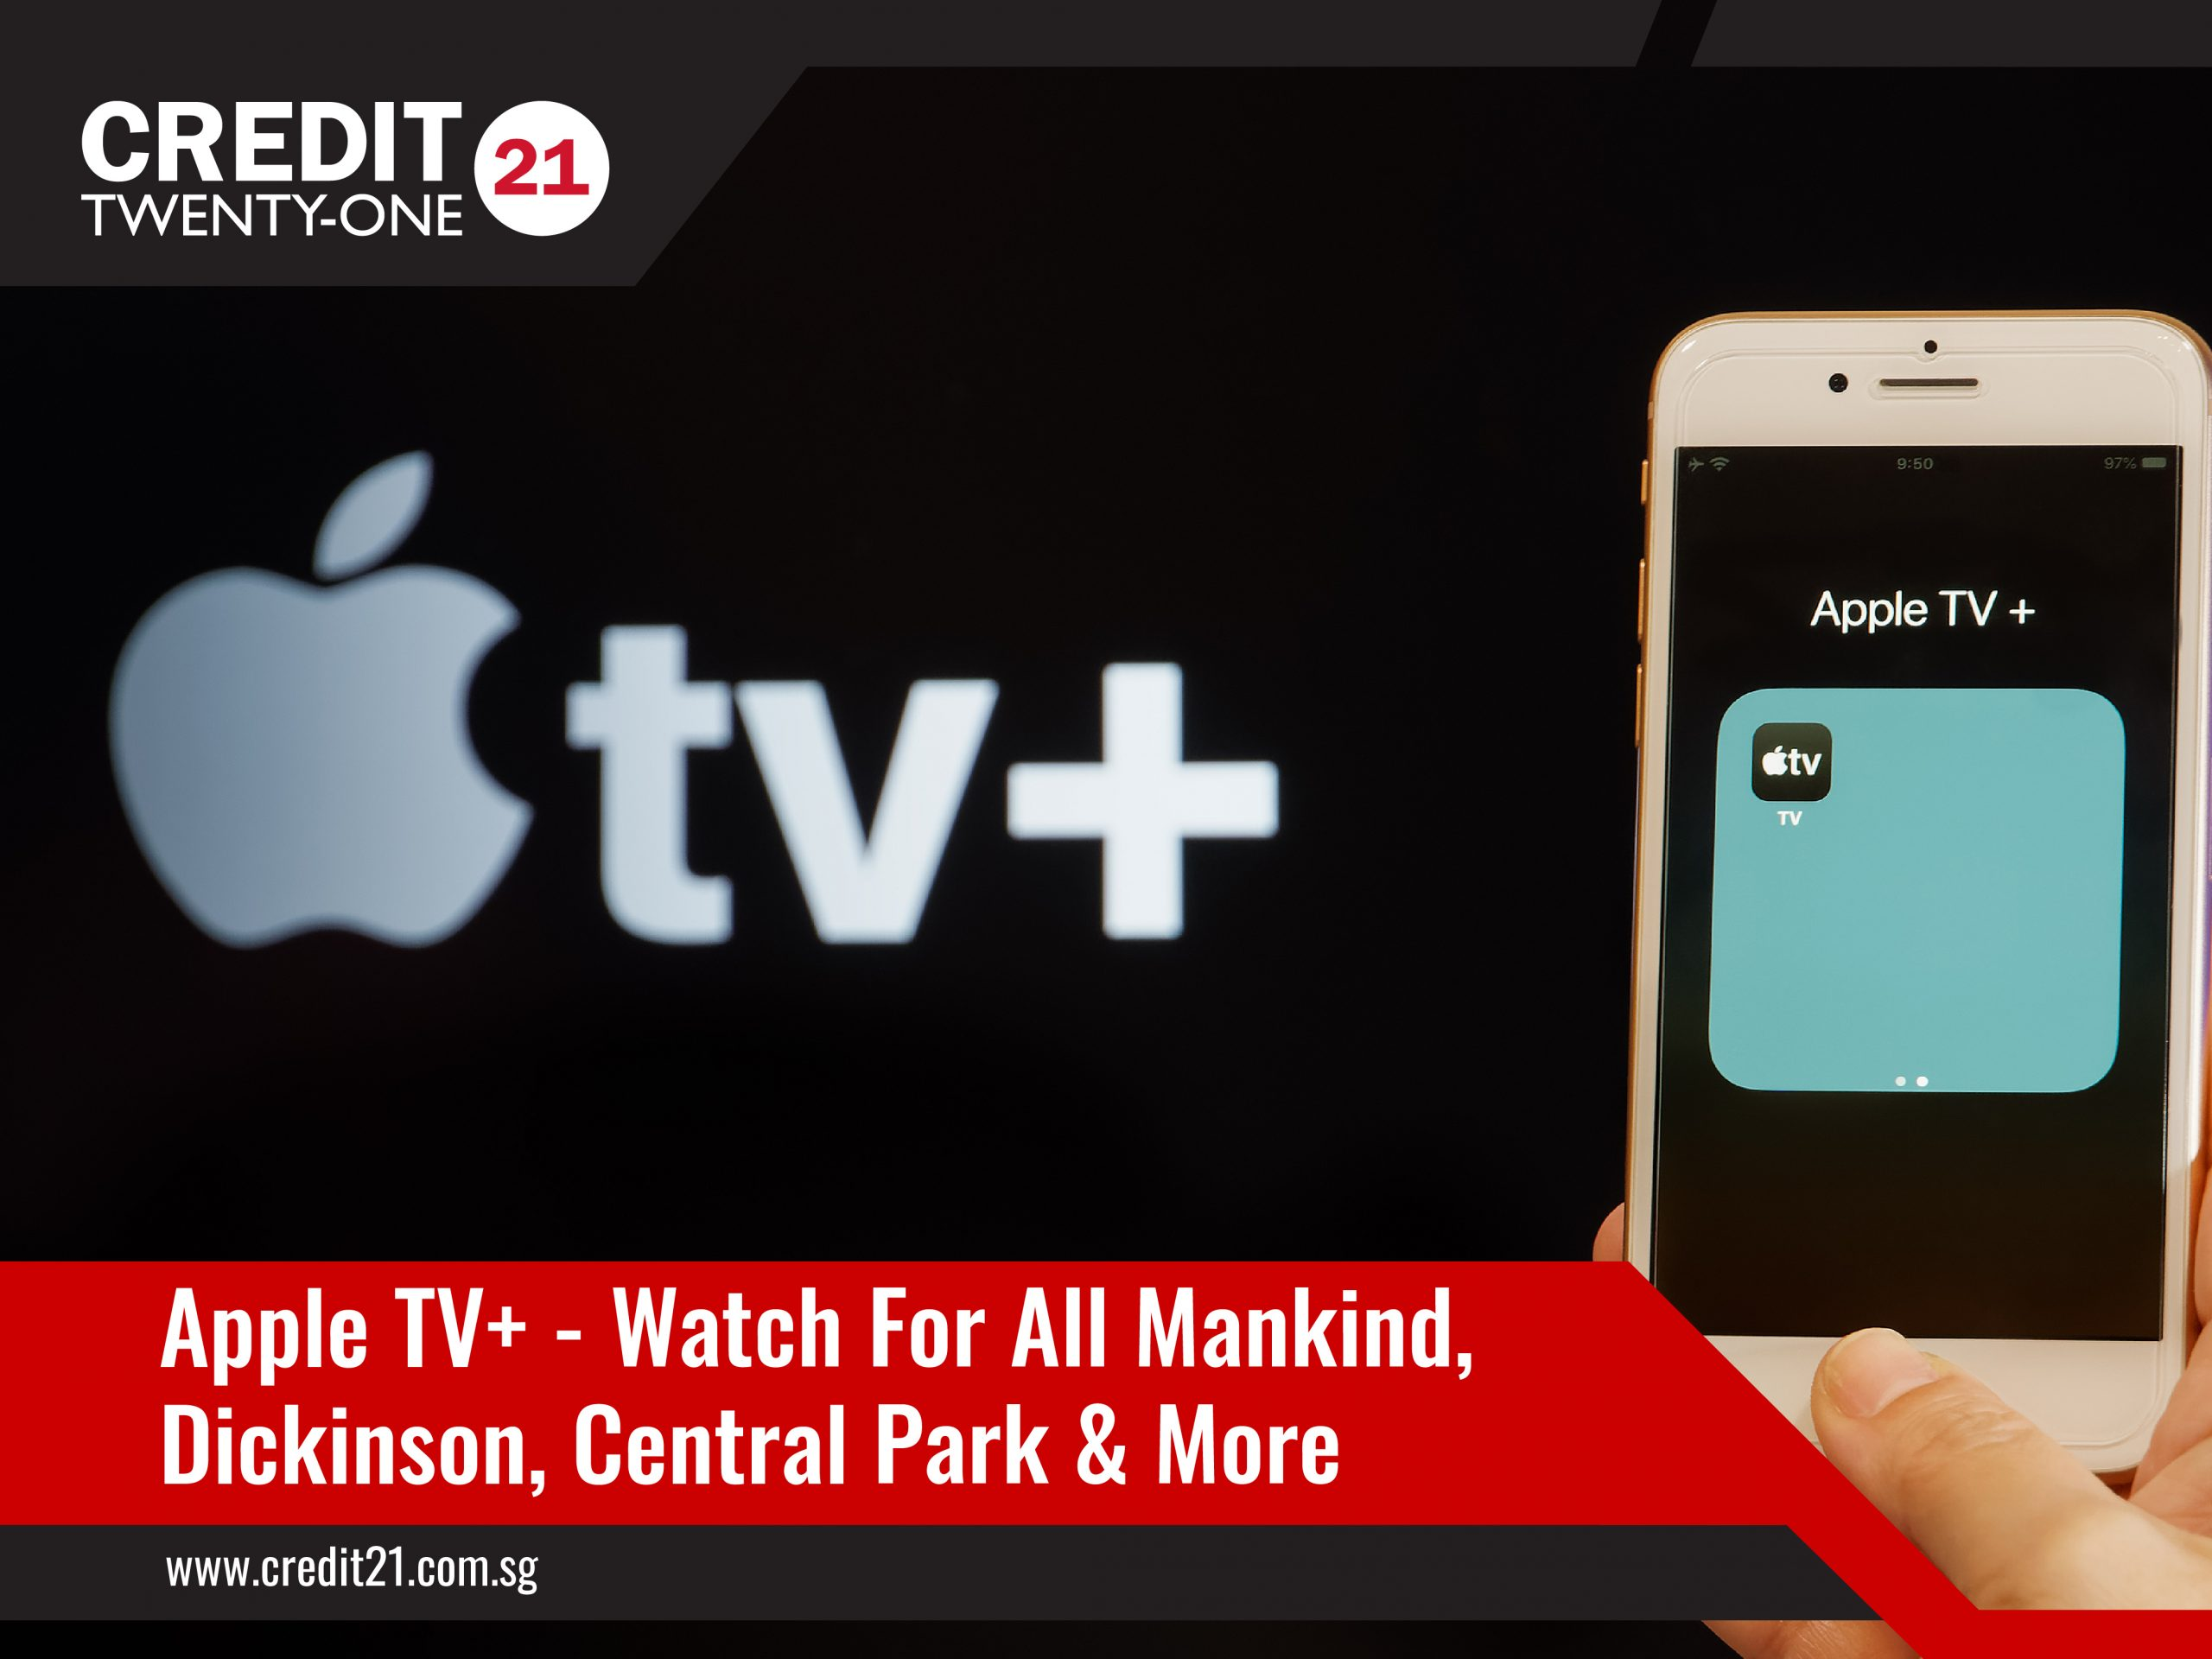 Watch Apple TV For All Mankind, Dickinson,Central Park Credit 21 TV Streaming Services Singapore